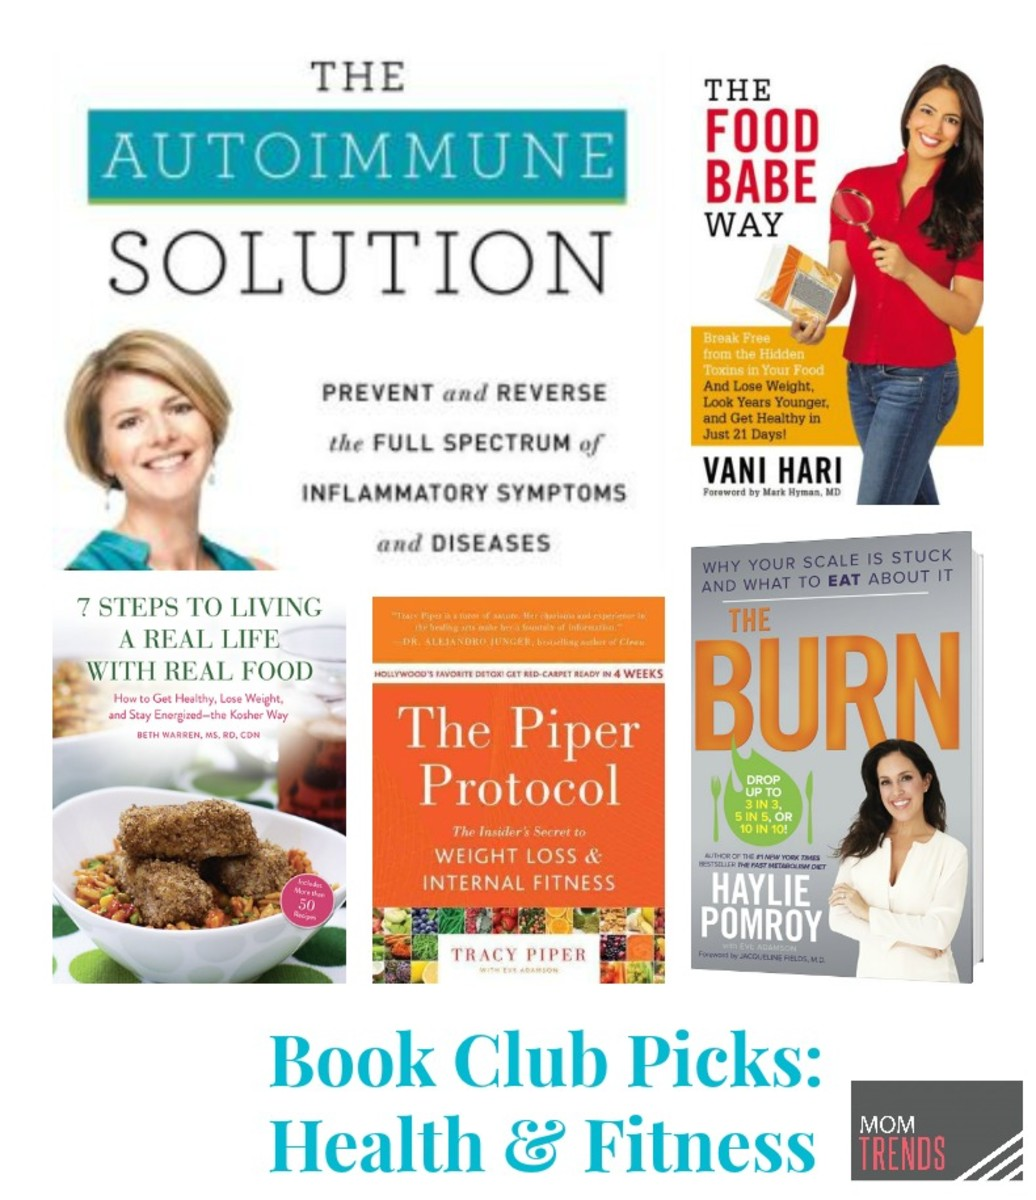 Book Club Picks: Health & Fitness